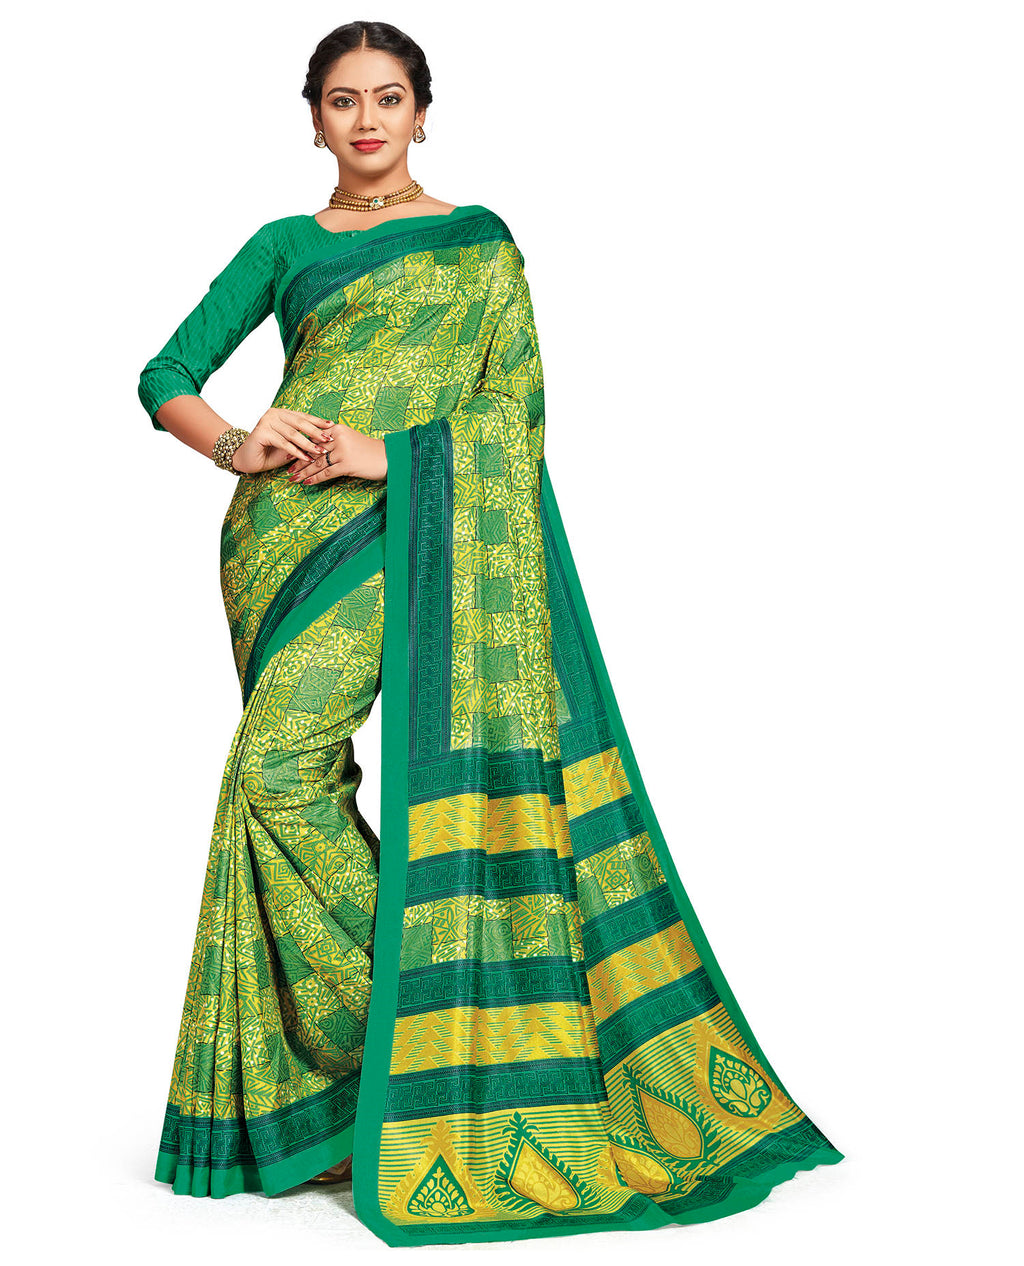 Green Color Crepe Daily Wear Printed Sarees NYF-7803